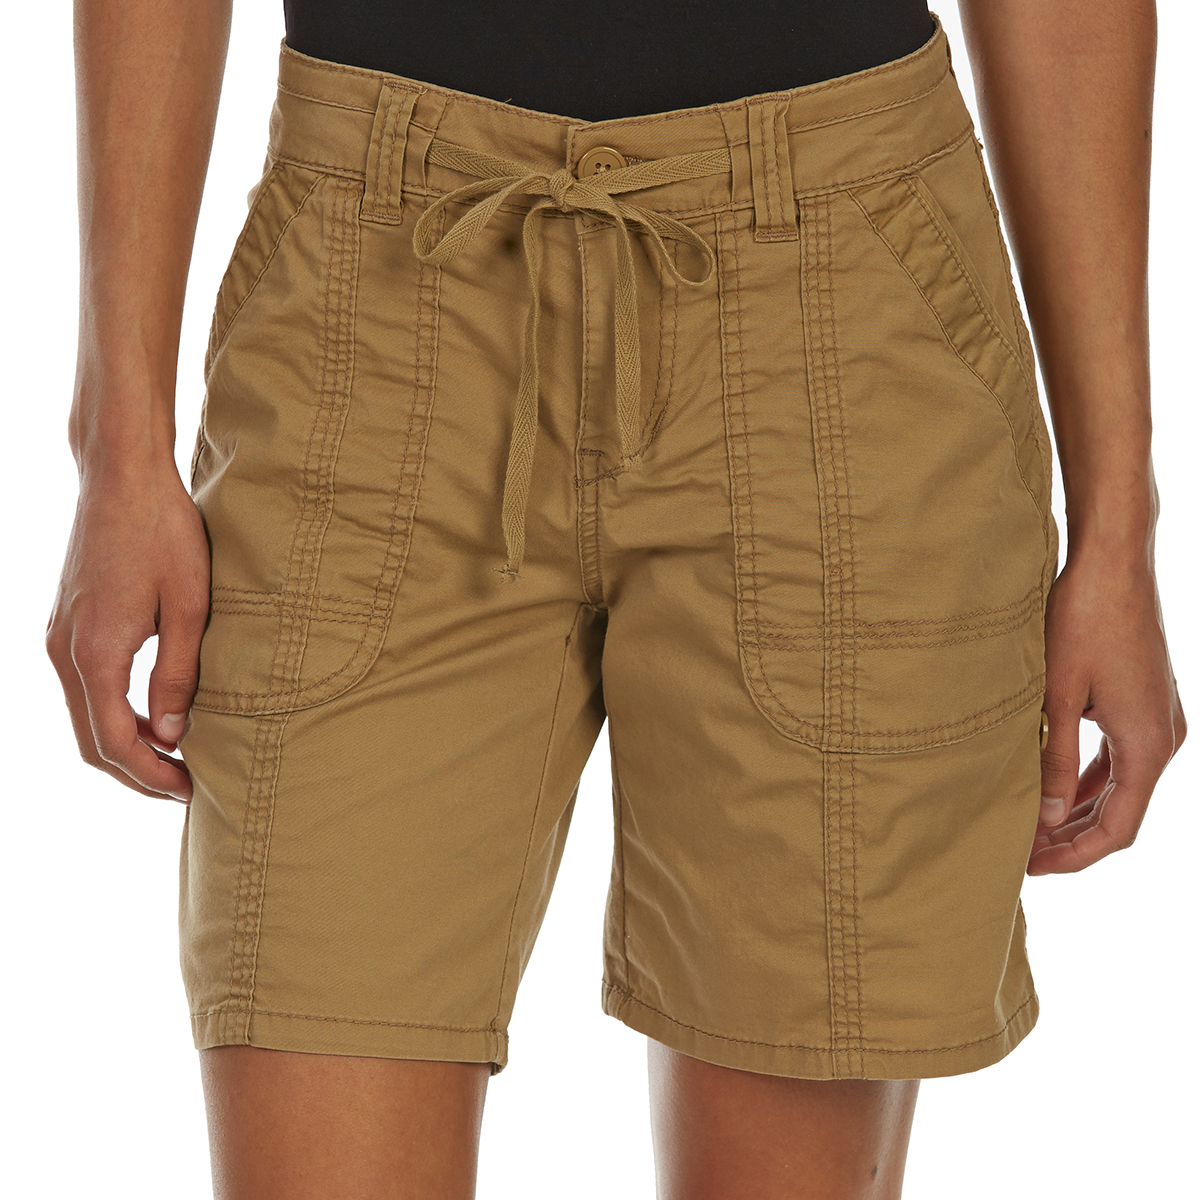 Supplies By Unionbay Women's Marty Convertible Shorts - Brown, 12